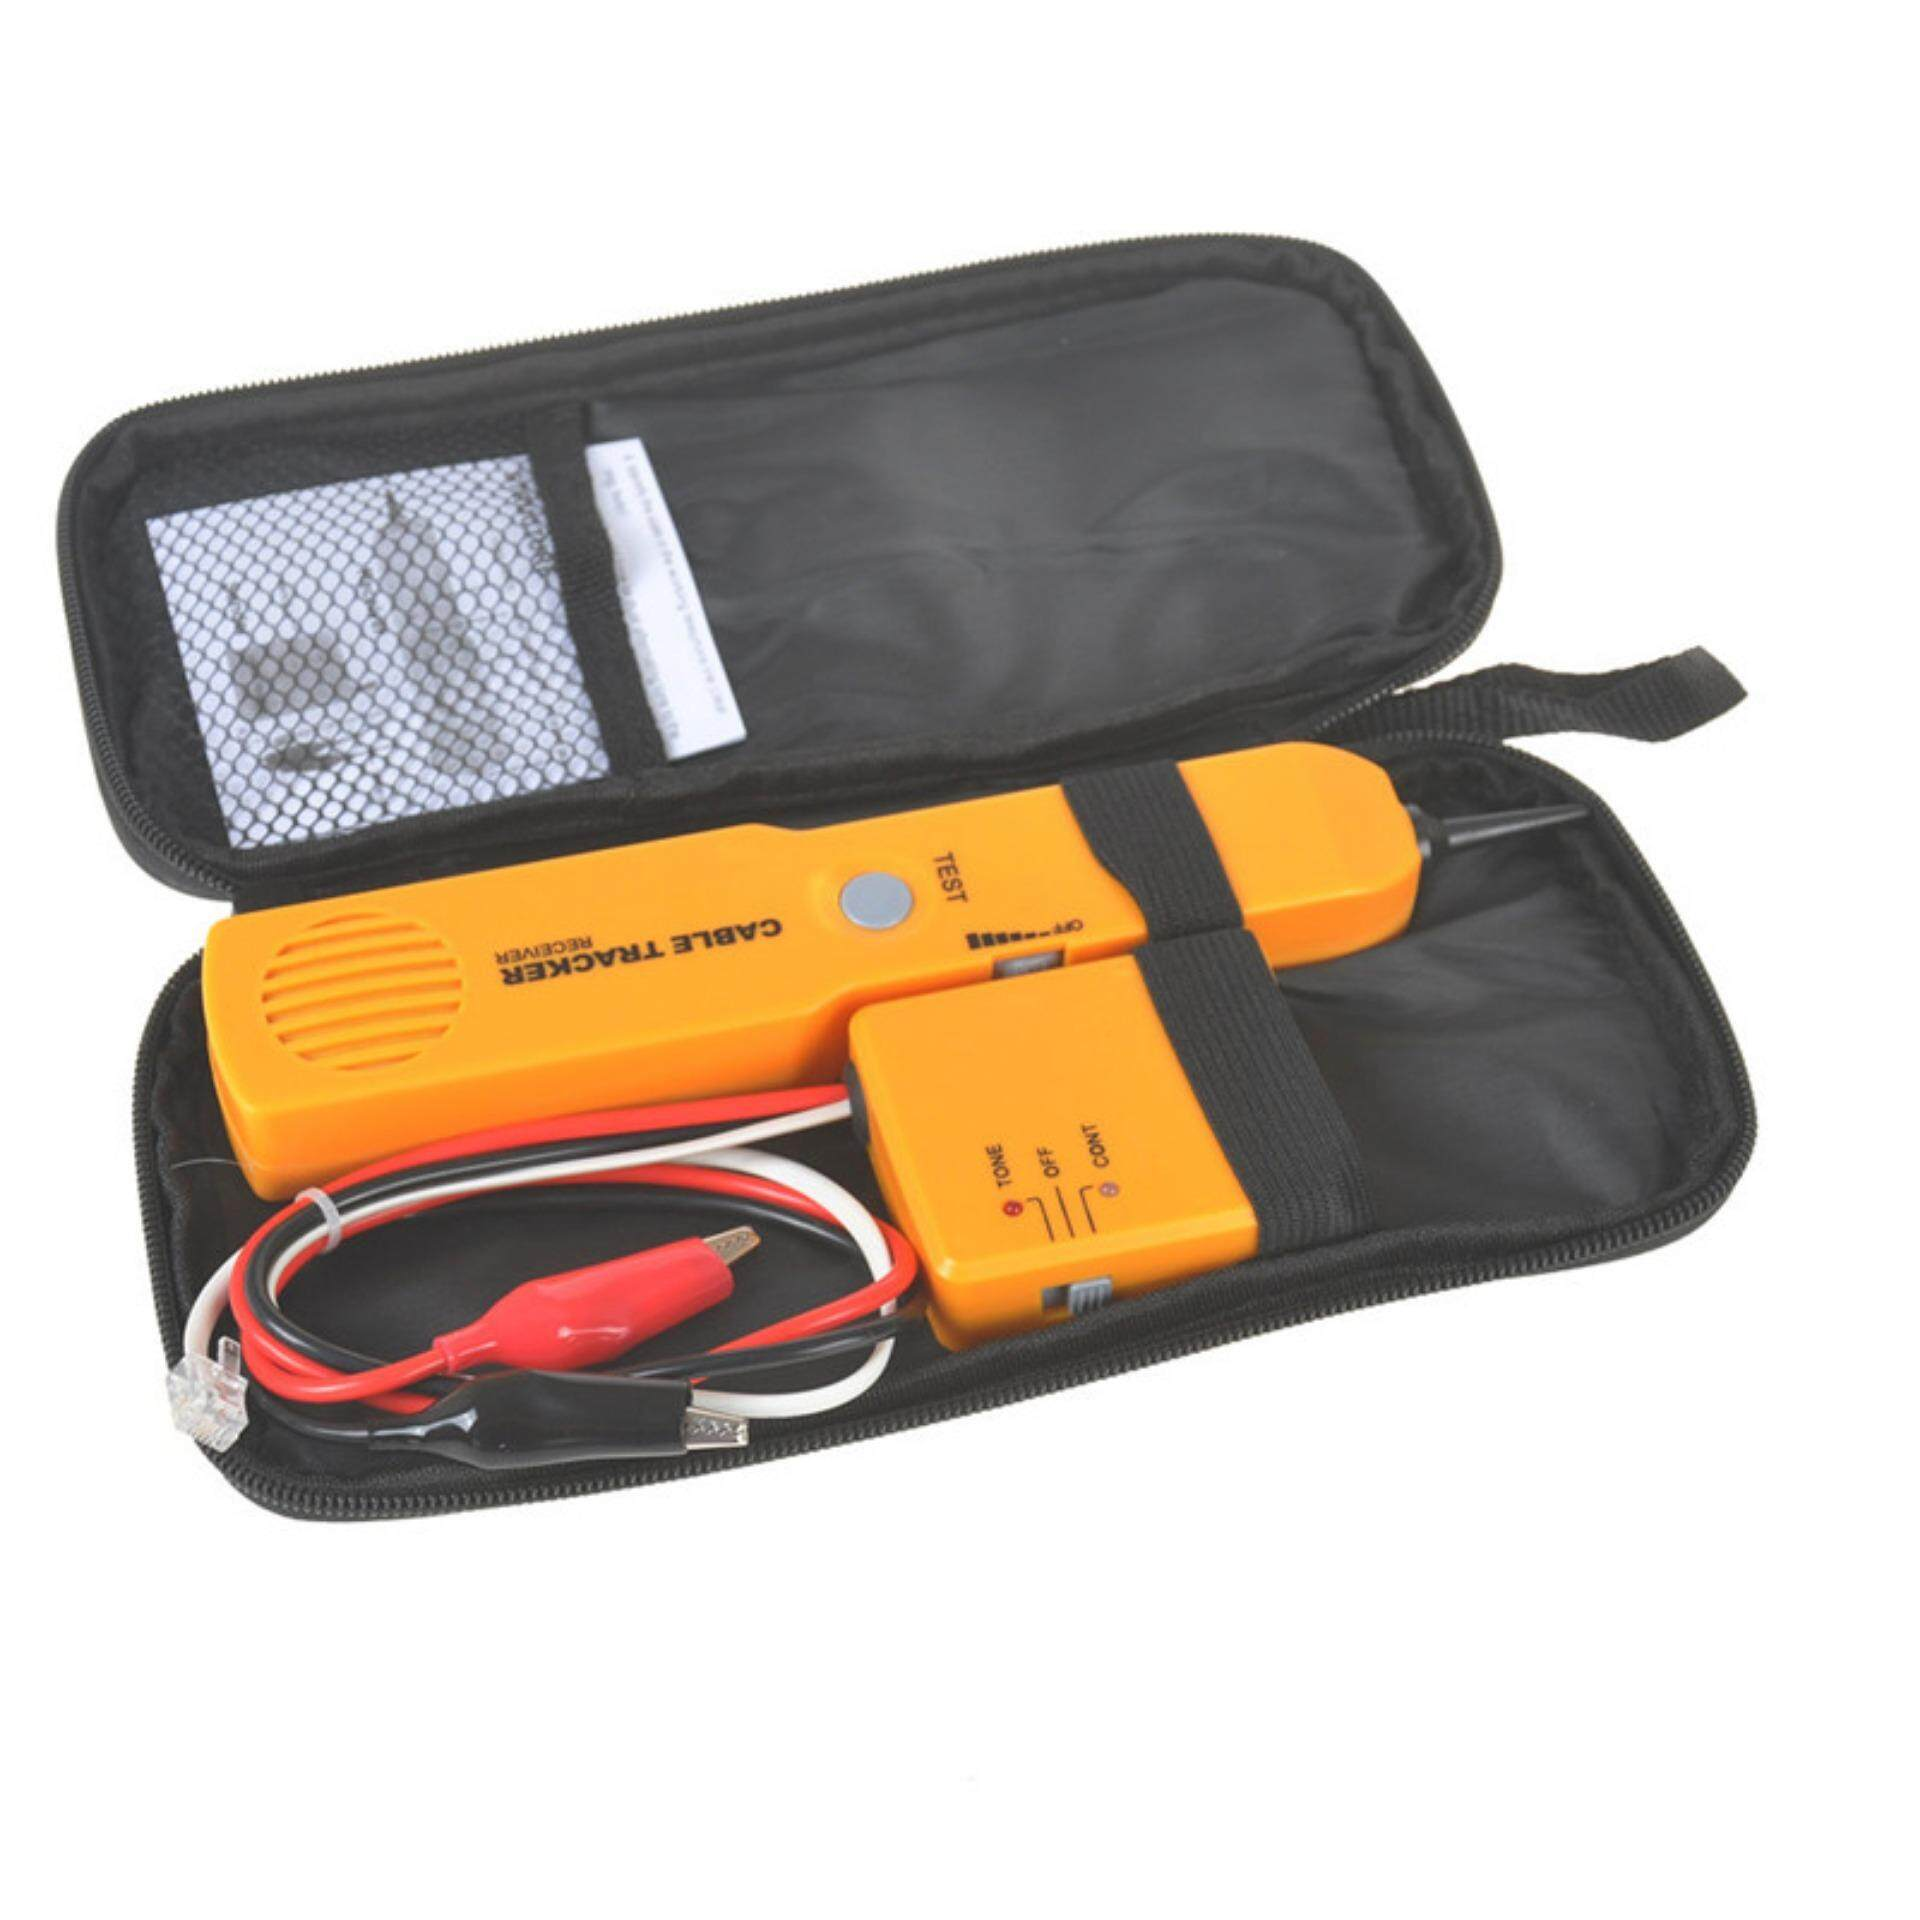 Sissi Rj11 Wire Tone Generator Probe Tracer Network Tracker Line Finder Cable Tester